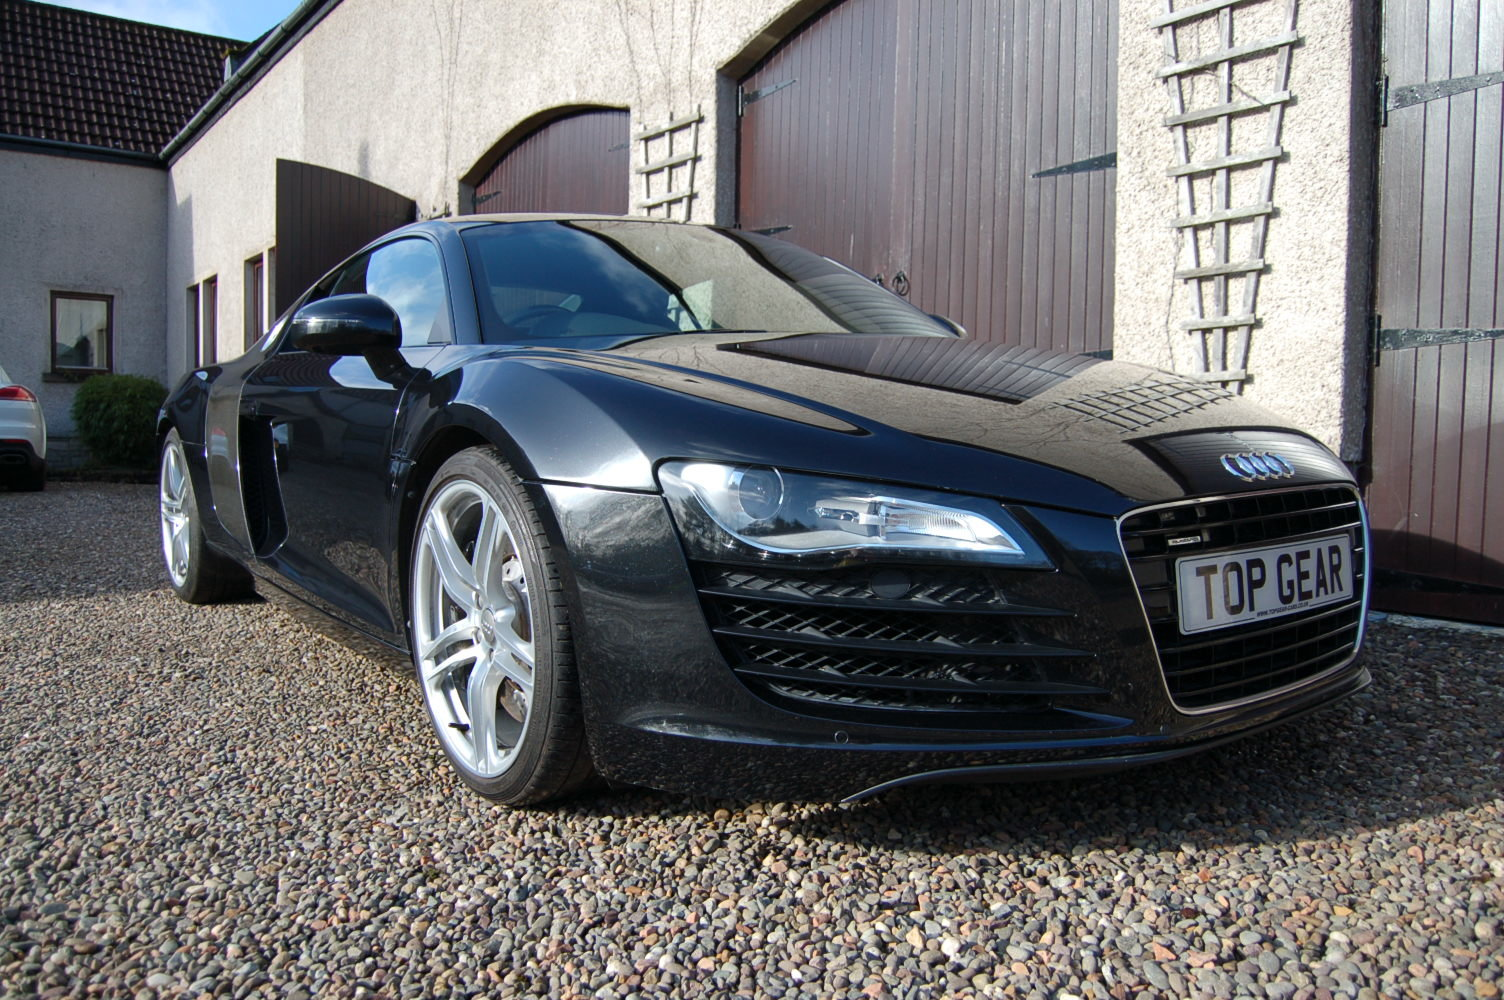 2008 Audi R8 Manual For Sale (picture 2 of 6)